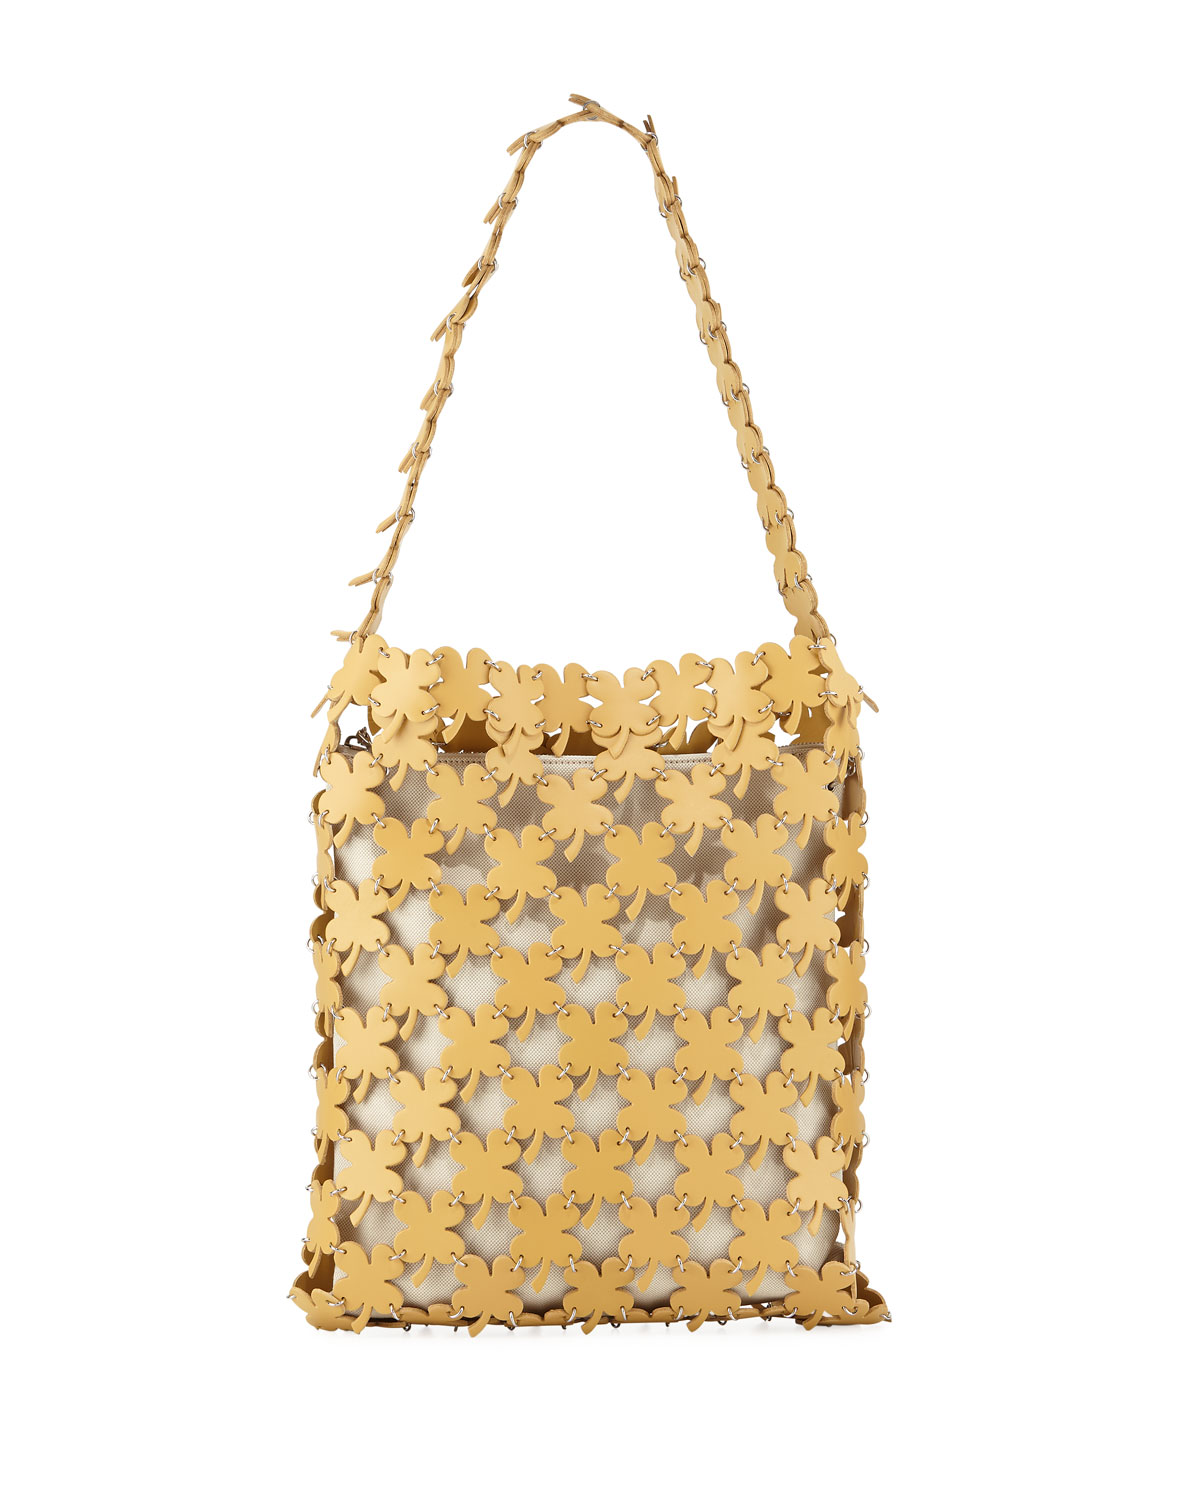 Paco Rabanne Canvases ICONIC CLOVER HOBO BAG